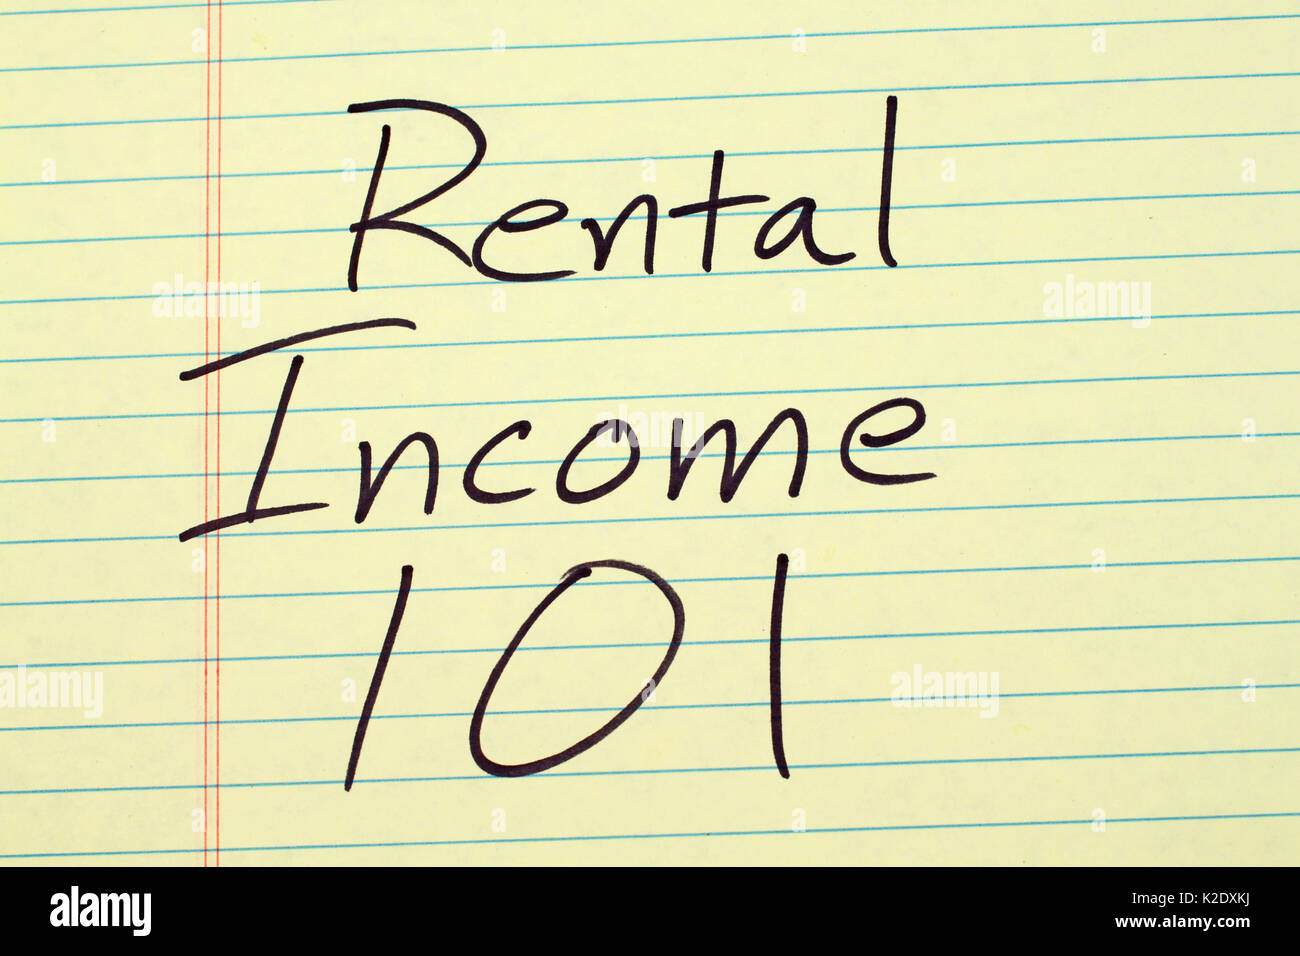 The words 'Rental Income 101' on a yellow legal pad - Stock Image